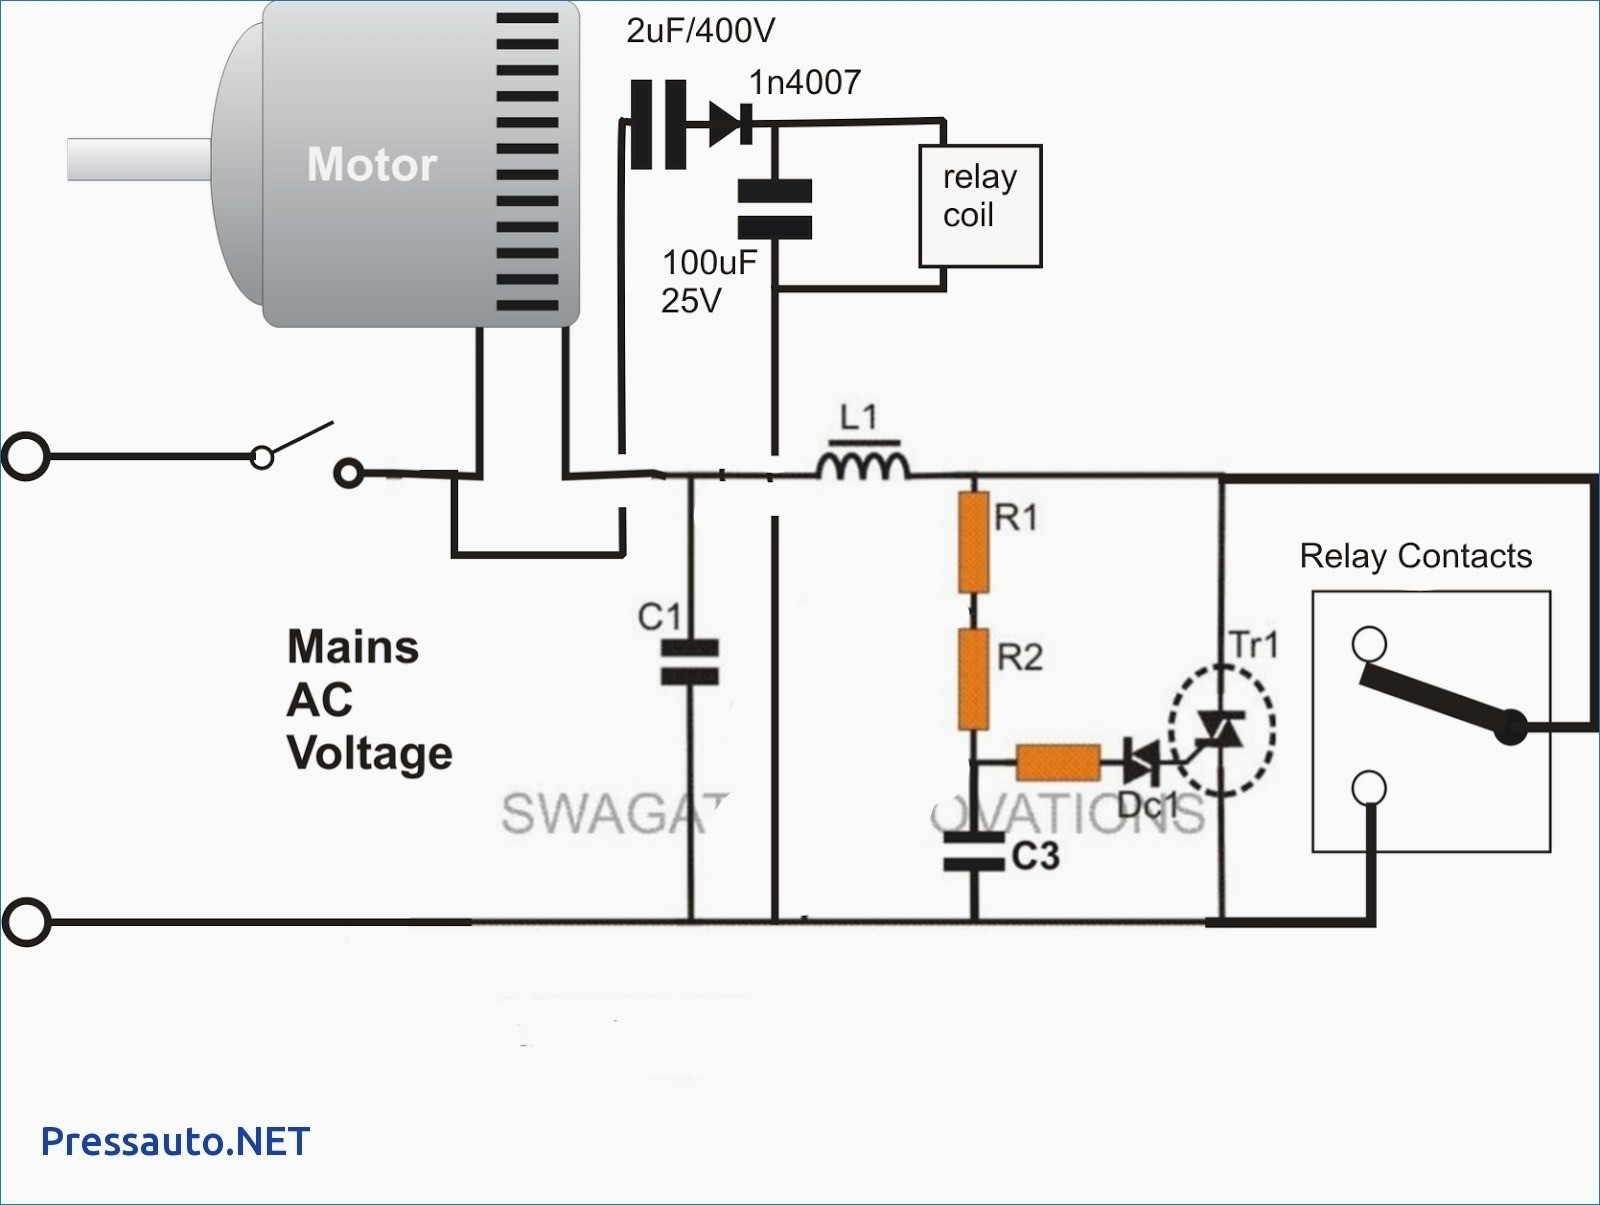 Soft Starter Wiring Diagram | Wiring Diagram Database on magnetic chuck wiring diagram, combo starter diagram, battery diagram, how a generator works diagram, magnetic switch 12v, electric motor diagram, magnetic switch for band saw, solenoid parts diagram, 3 phase motor starter diagram, magnetic motor diagram, magnetic starters how they work, magnetic starter installation, magnetic transfer wiring, magnetic starter motor, magnetic starter switch, magnetic switch wiring diagram, transmission diagram, magnetic levitation diagram, relay diagram, size 4 starter diagram,